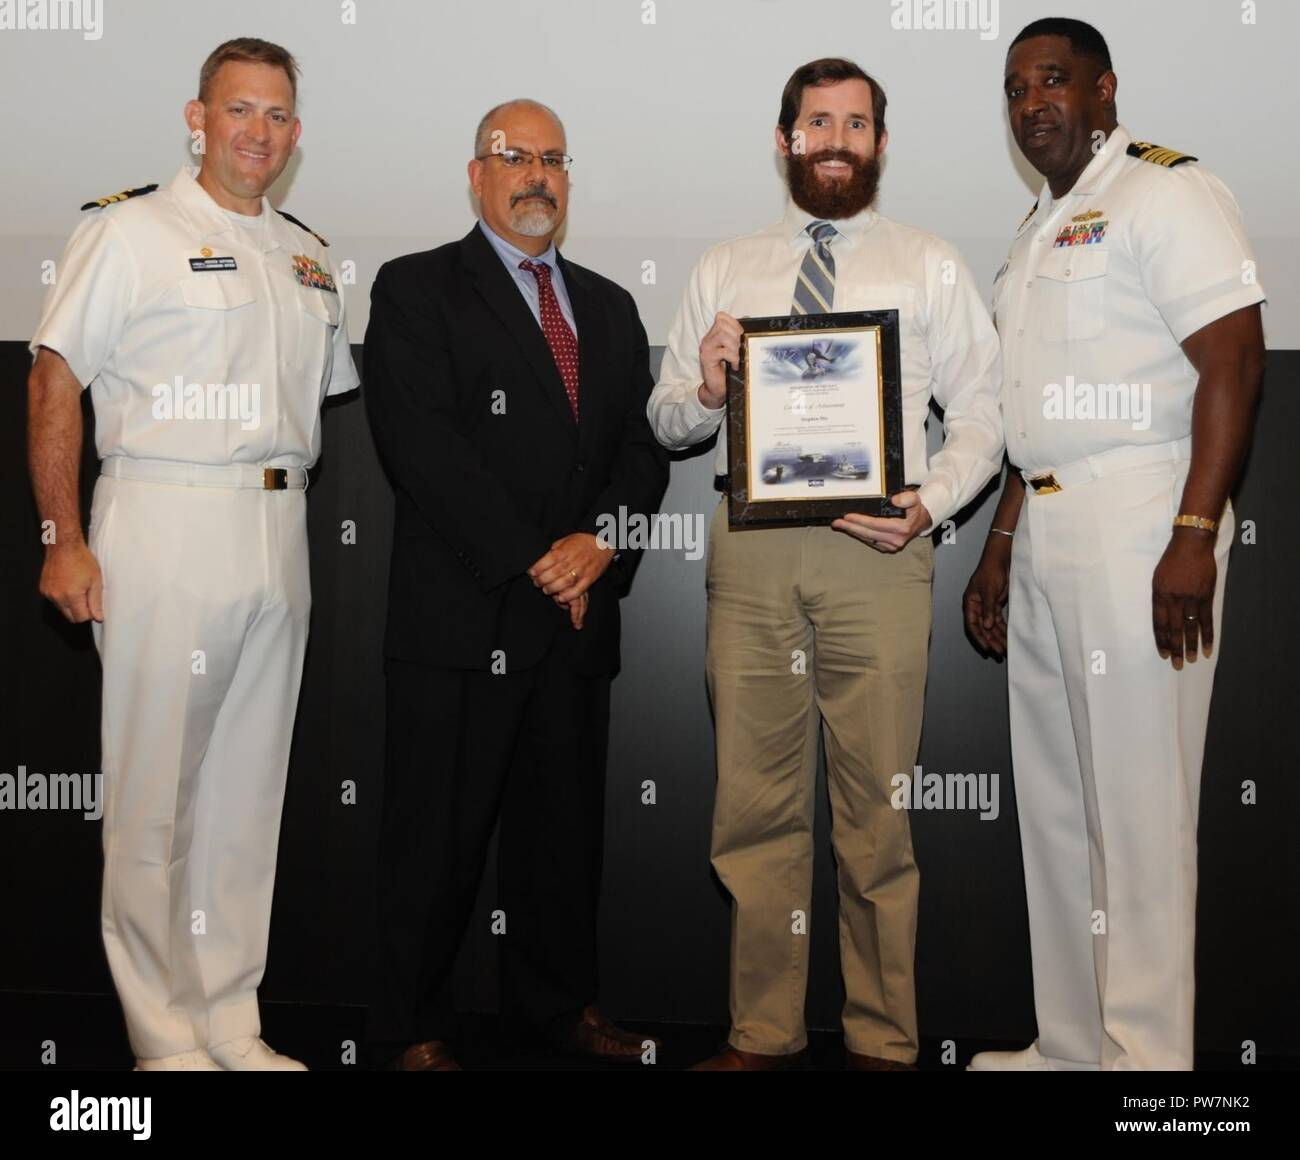 Naval Surface Warfare Center Dahlgren Stock Photos Andrew Smith Navy Formal Trousers 32 Stephen Dix Receives His Certificate Of Achievement From